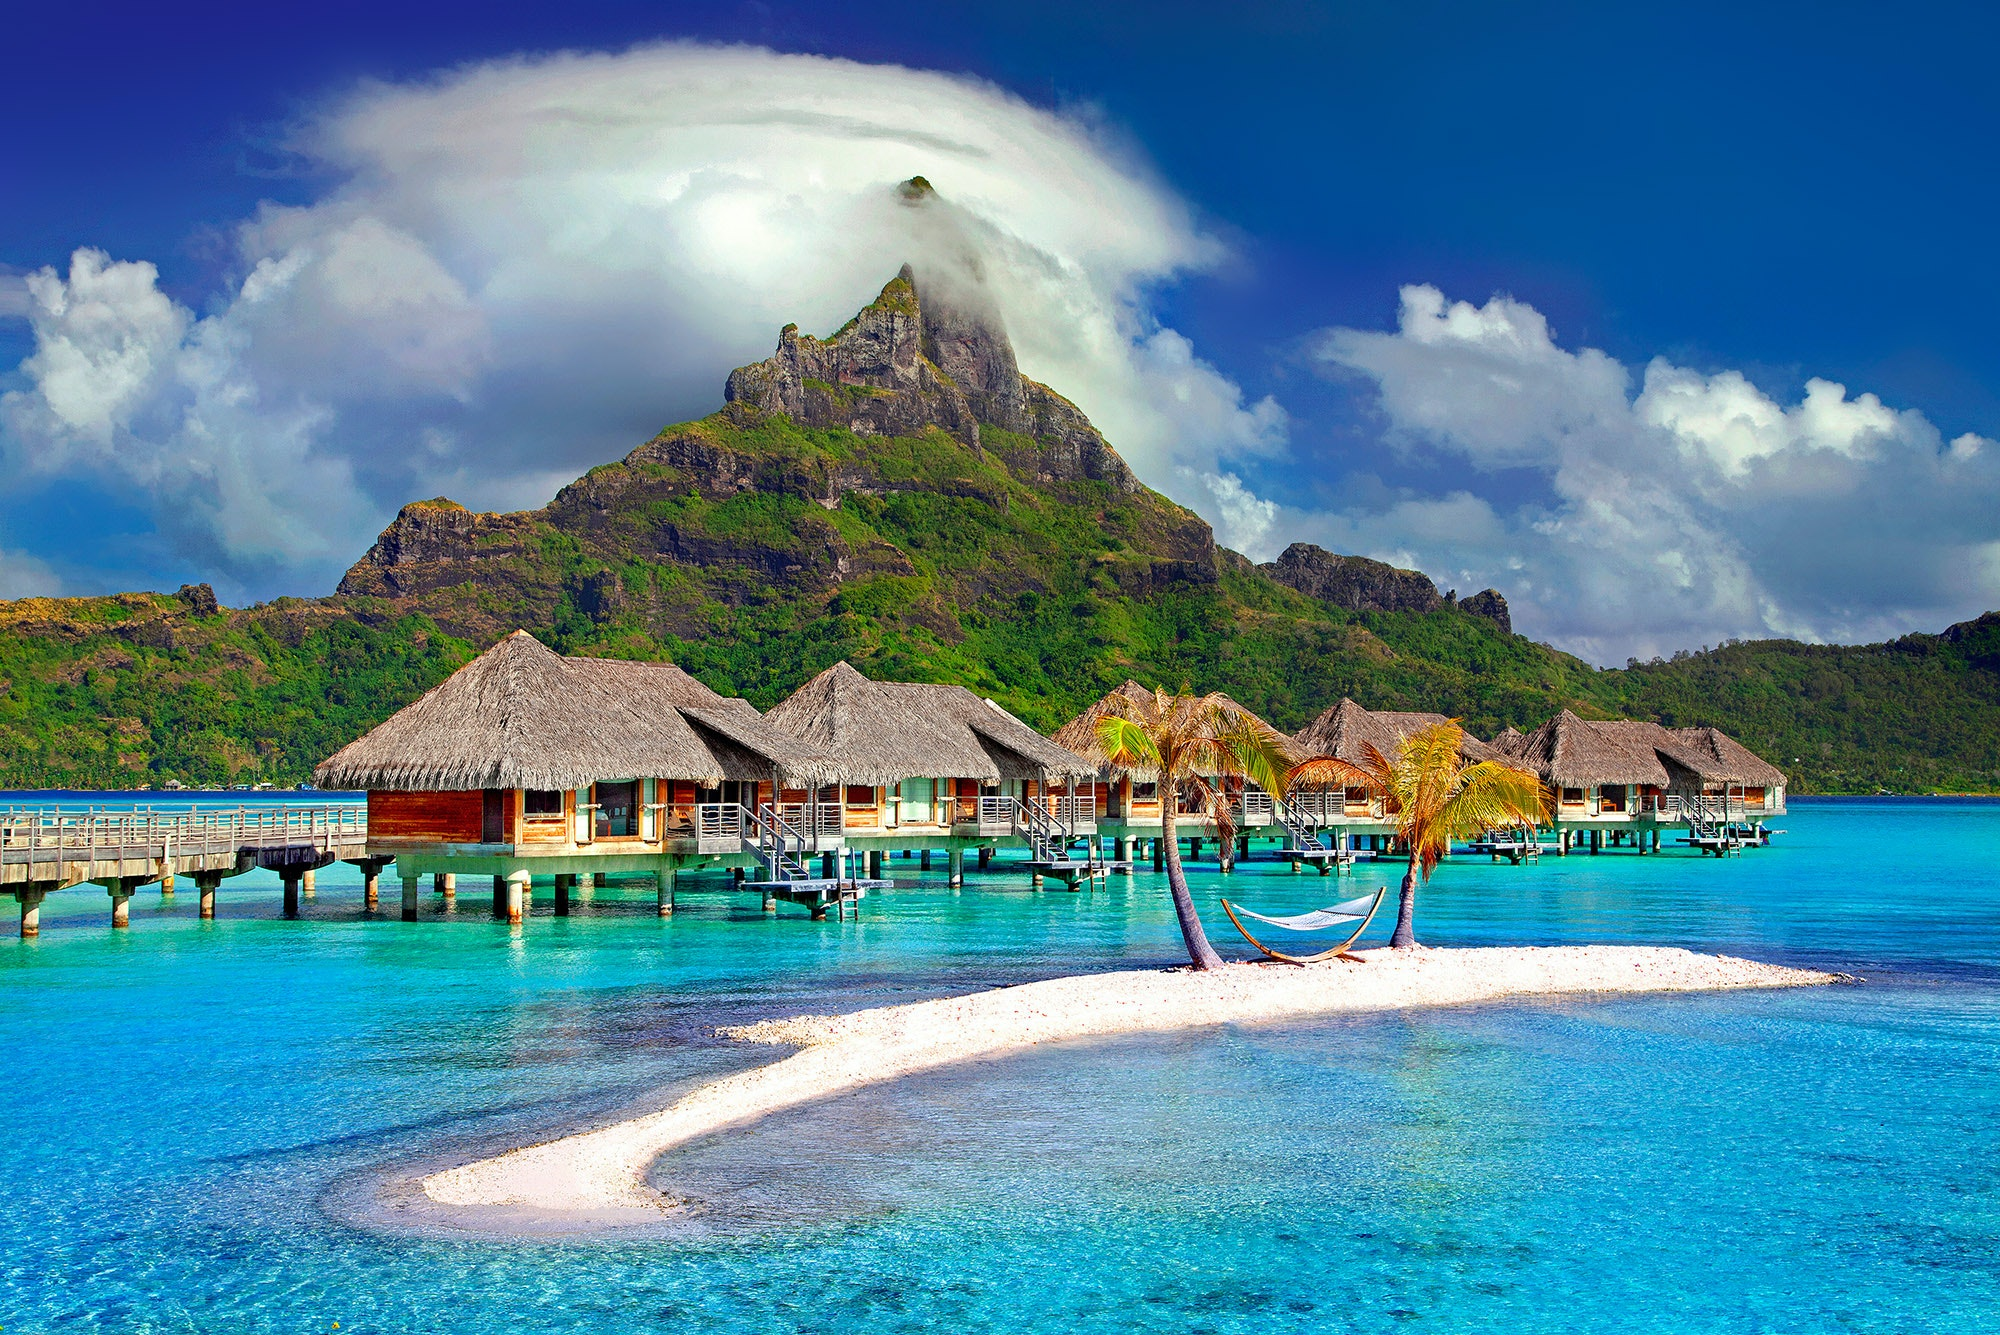 The island of Bora Bora in the country of French Polynesia